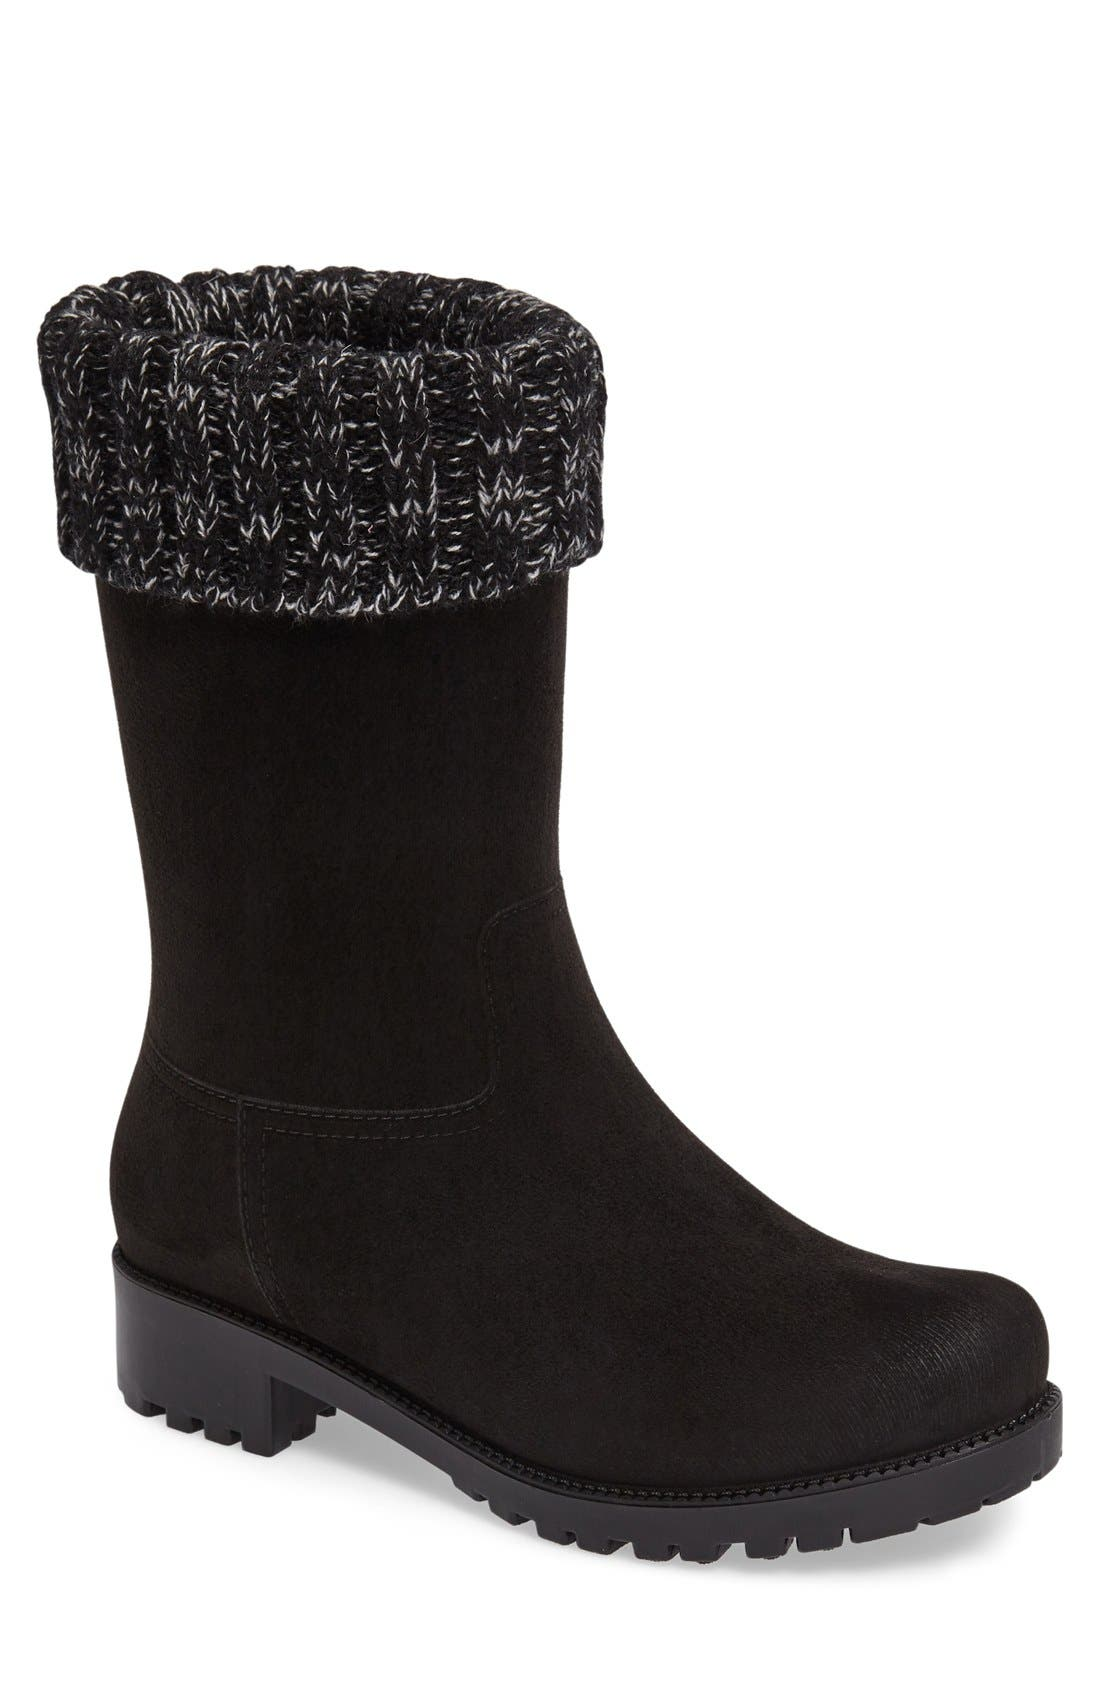 däv Shelby Knit Cuff Waterproof Boot (Women's Shoes)